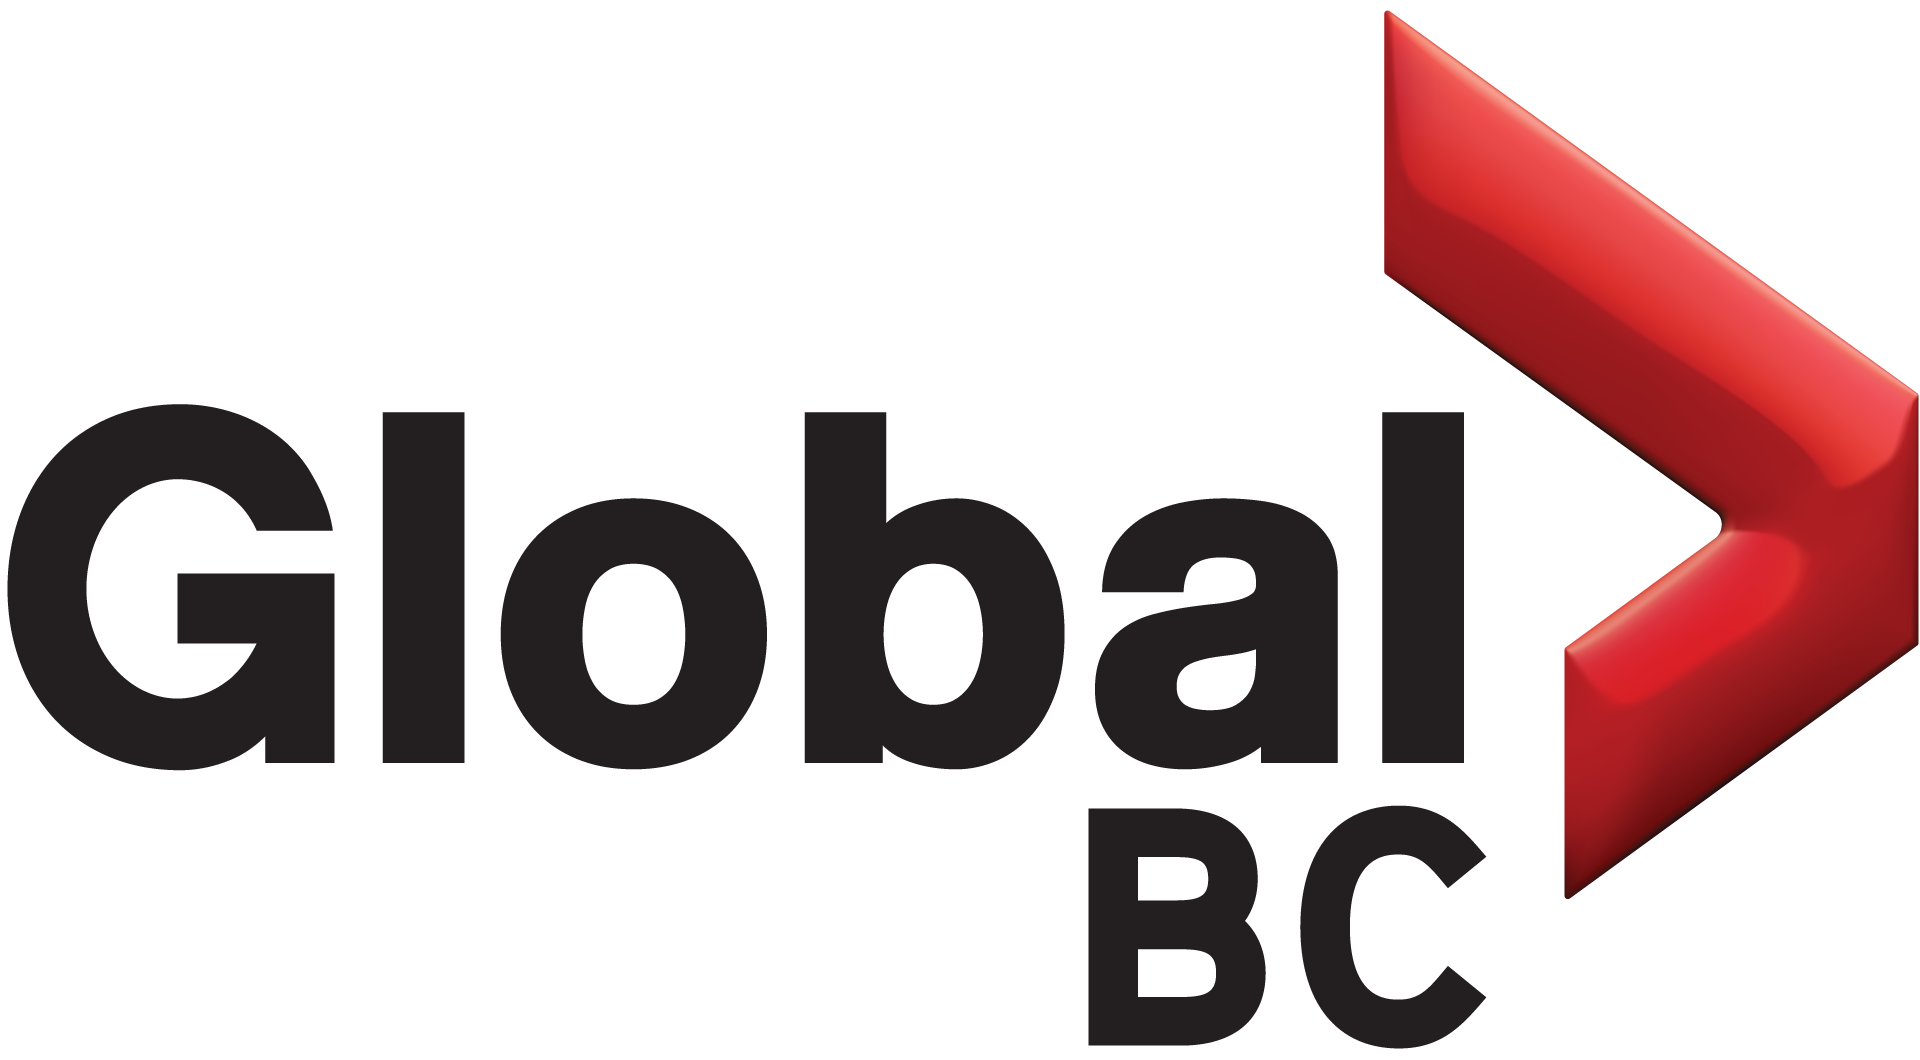 https://globalnews.ca/bc/